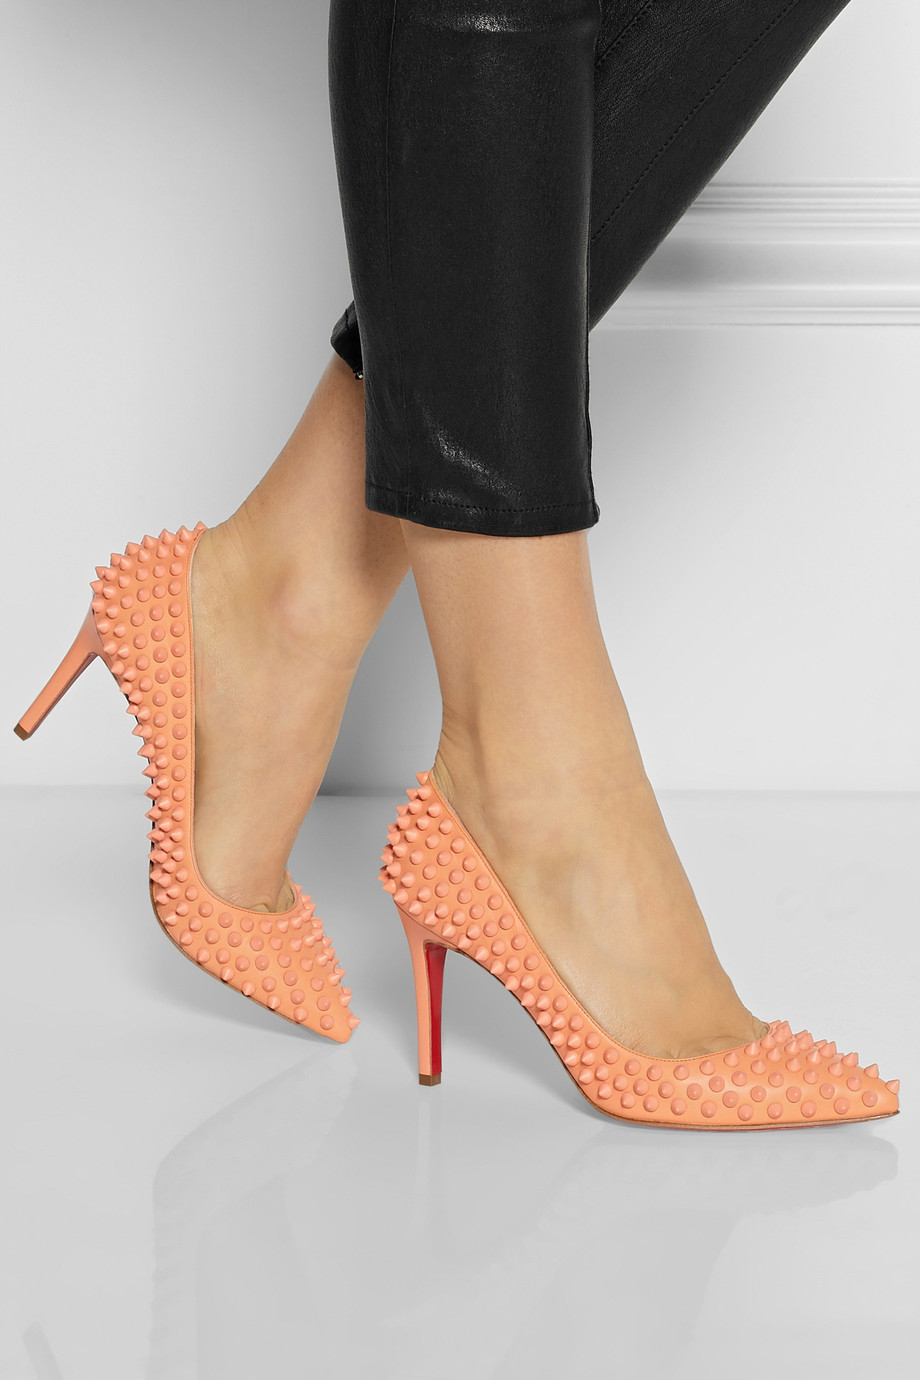 christian louboutin black patent pigalle 85